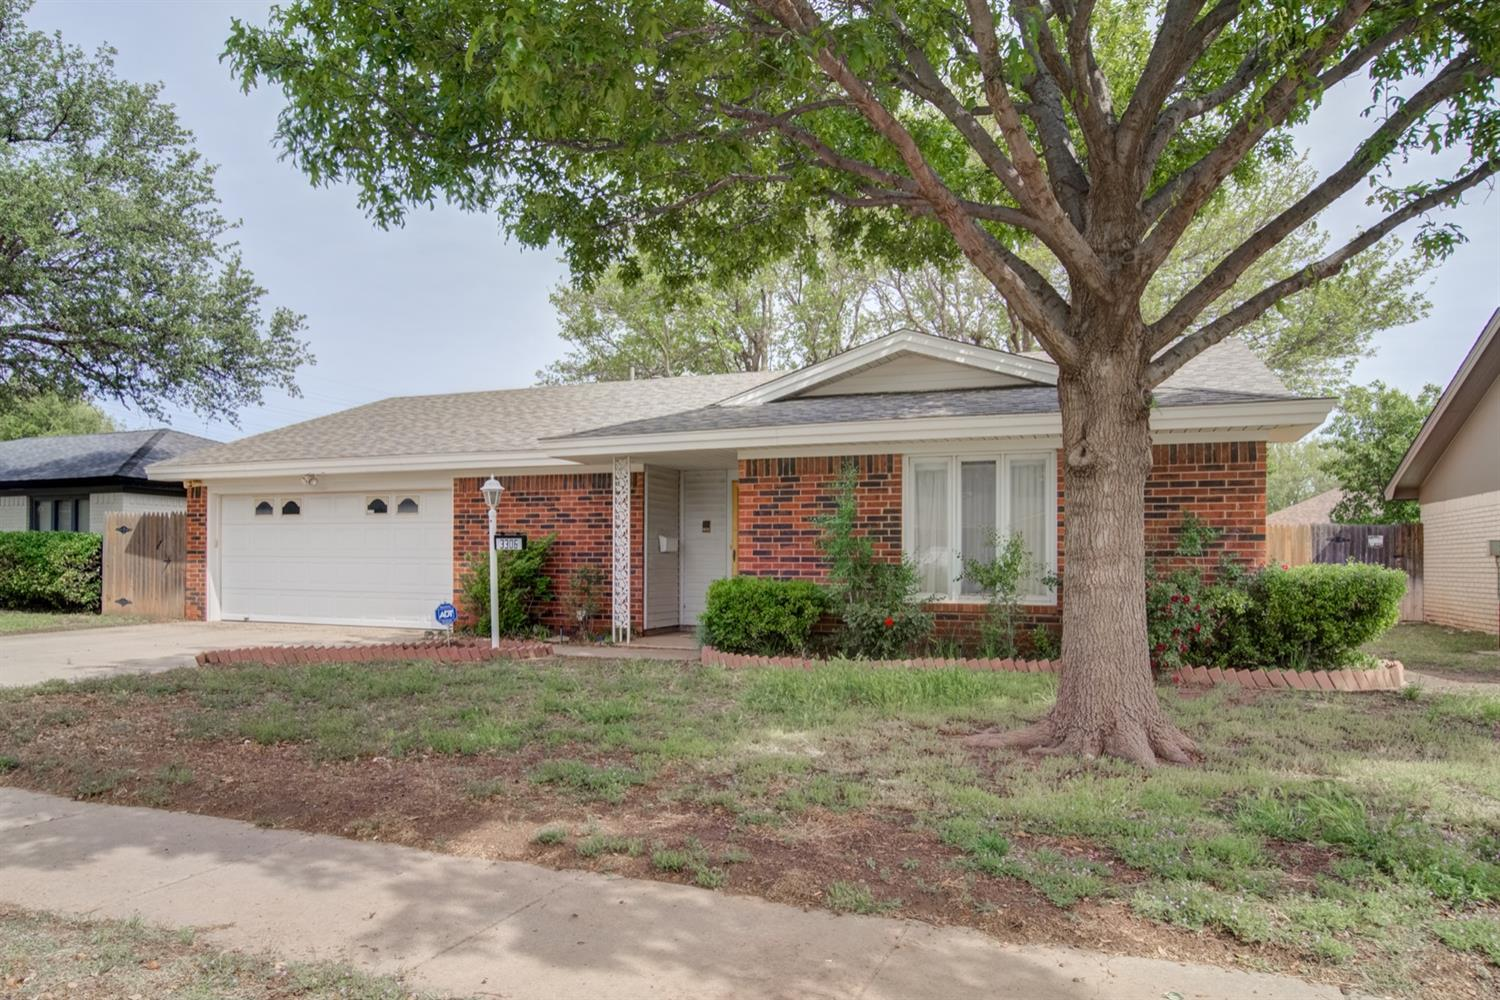 3306 93rd Street, Lubbock in Lubbock County, TX 79423 Home for Sale